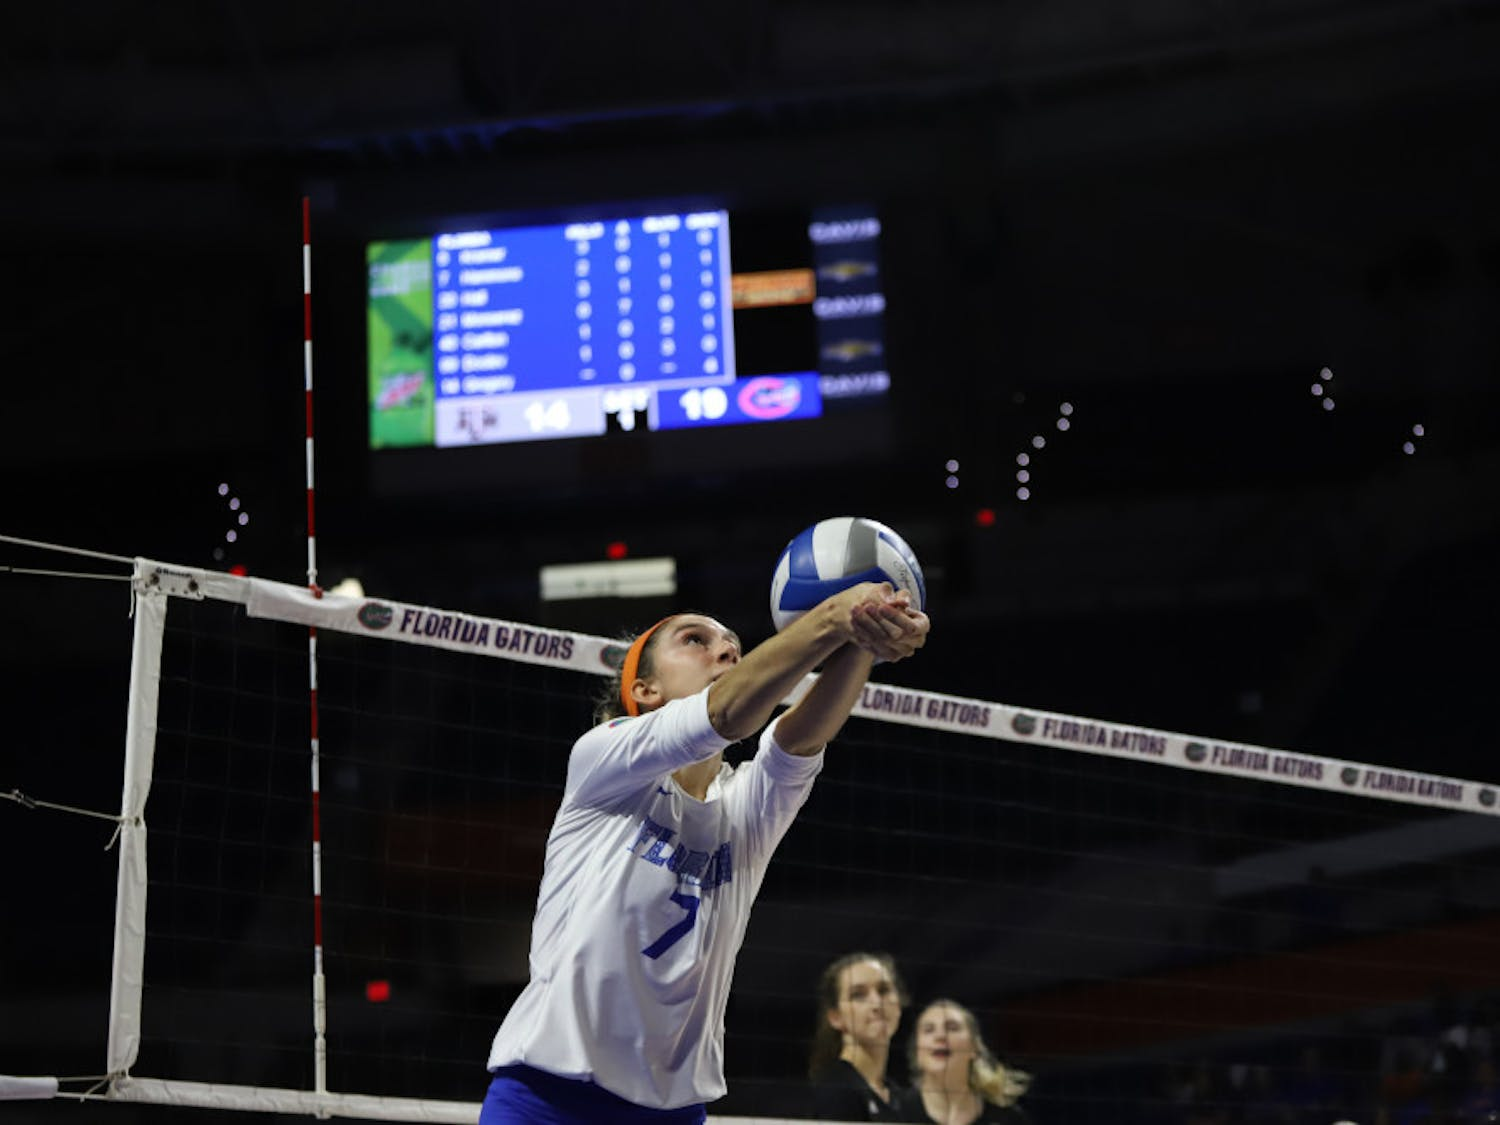 Outside hitter Paige Hammons at the Gators' home game against Texas A&M last season. In Florida's second game against Auburn Thursday, Hammons contributed six kills off the bench.